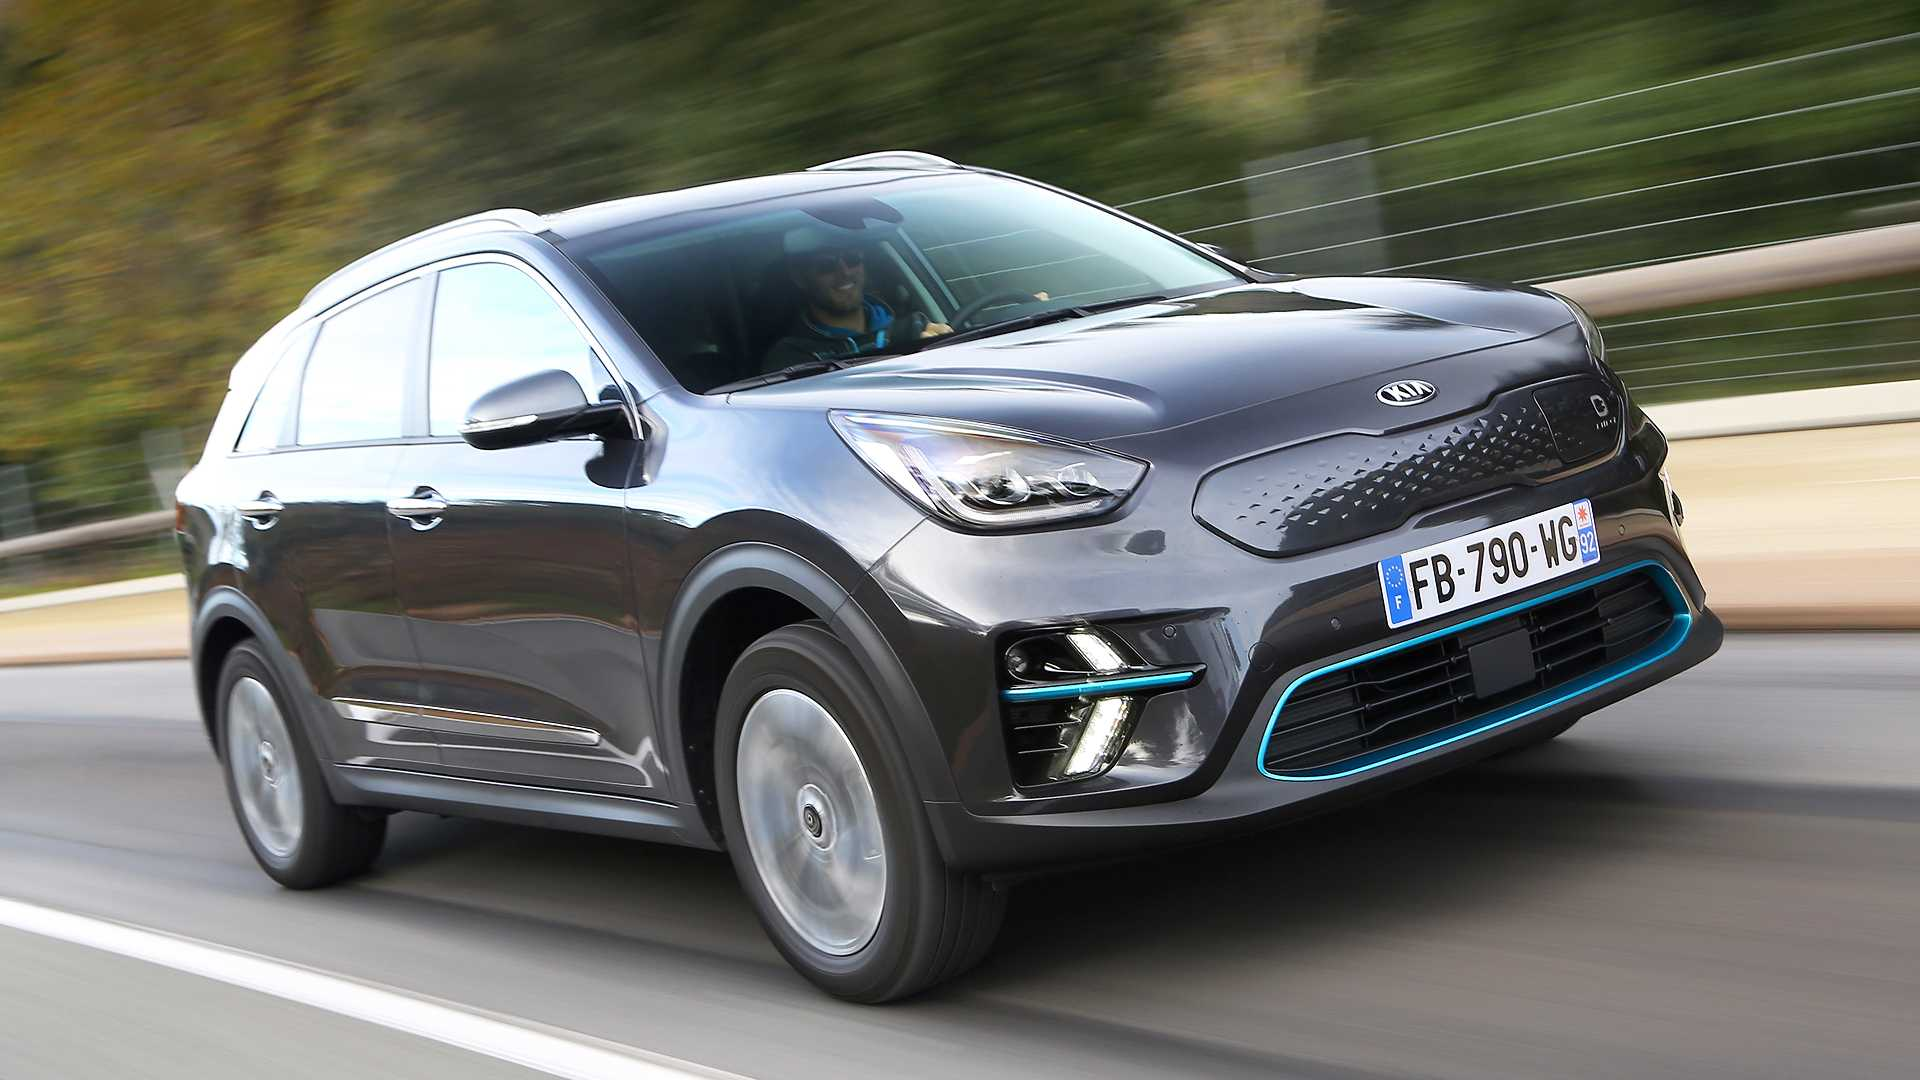 65 New Kia Niro 2019 Pricing